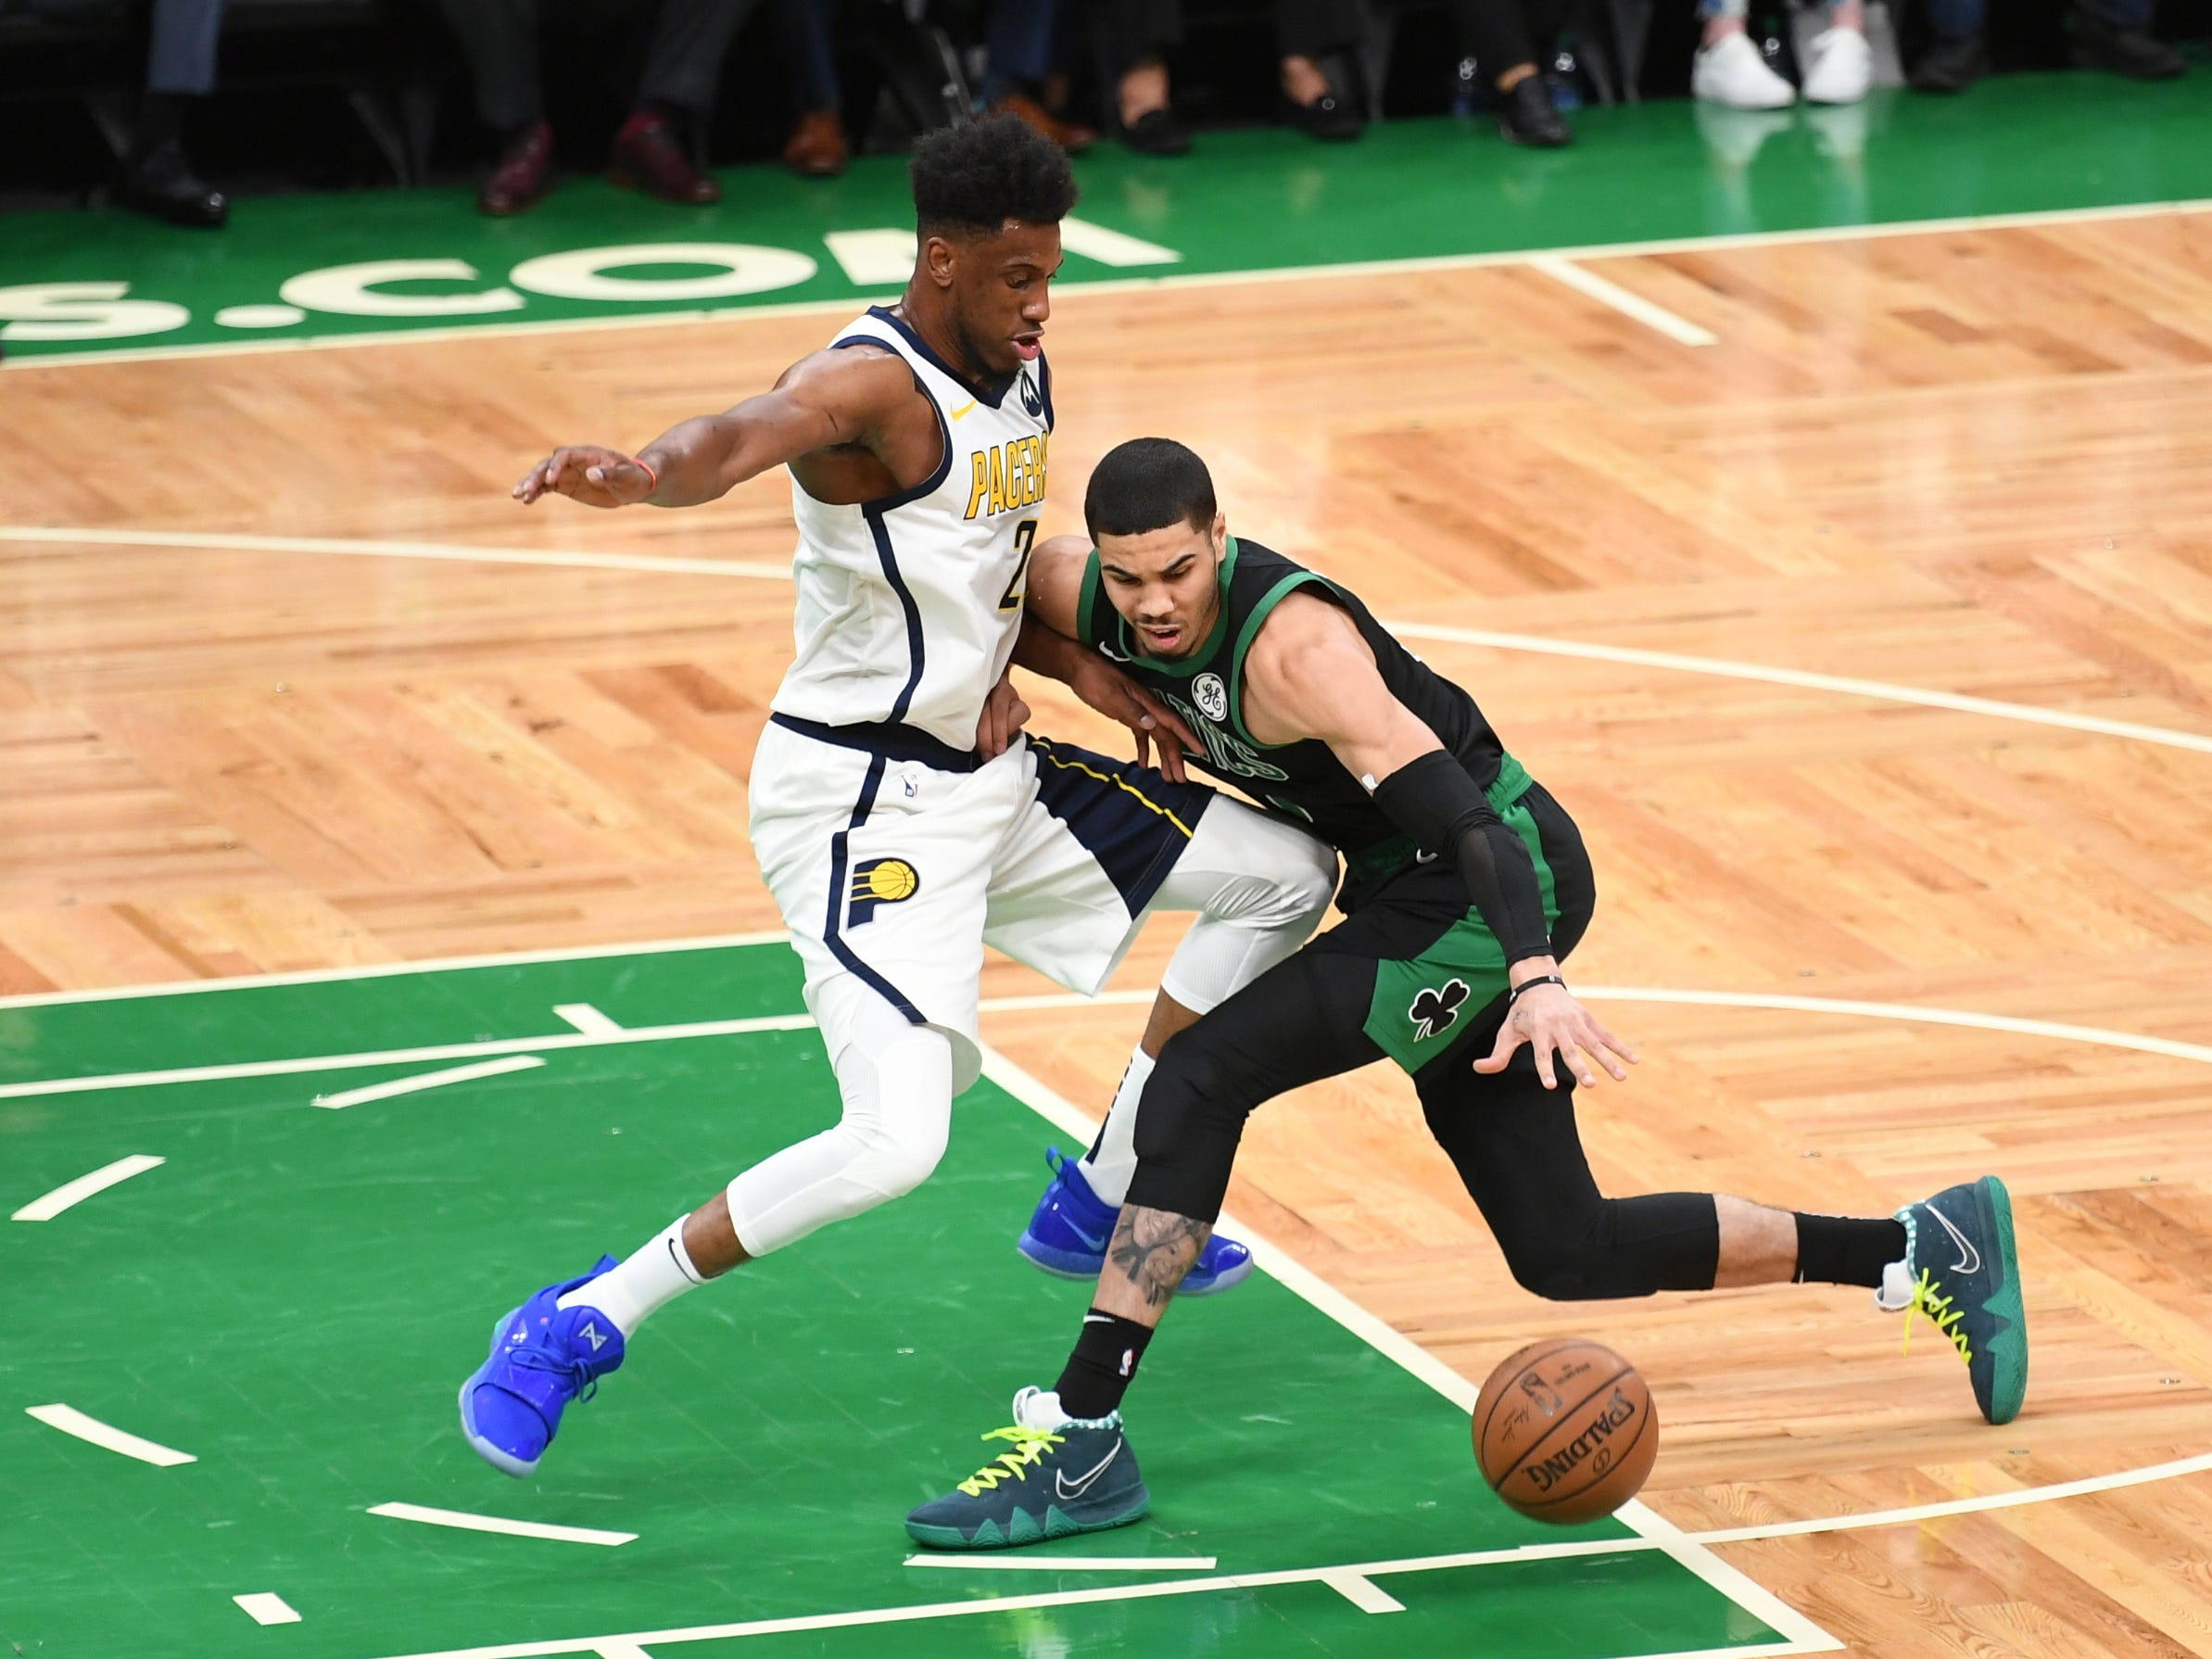 Apr 14, 2019; Boston, MA, USA; Indiana Pacers forward Thaddeus Young (21) defends Boston Celtics forward Jayson Tatum (0) during the first half in game one of the first round of the 2019 NBA Playoffs at TD Garden.